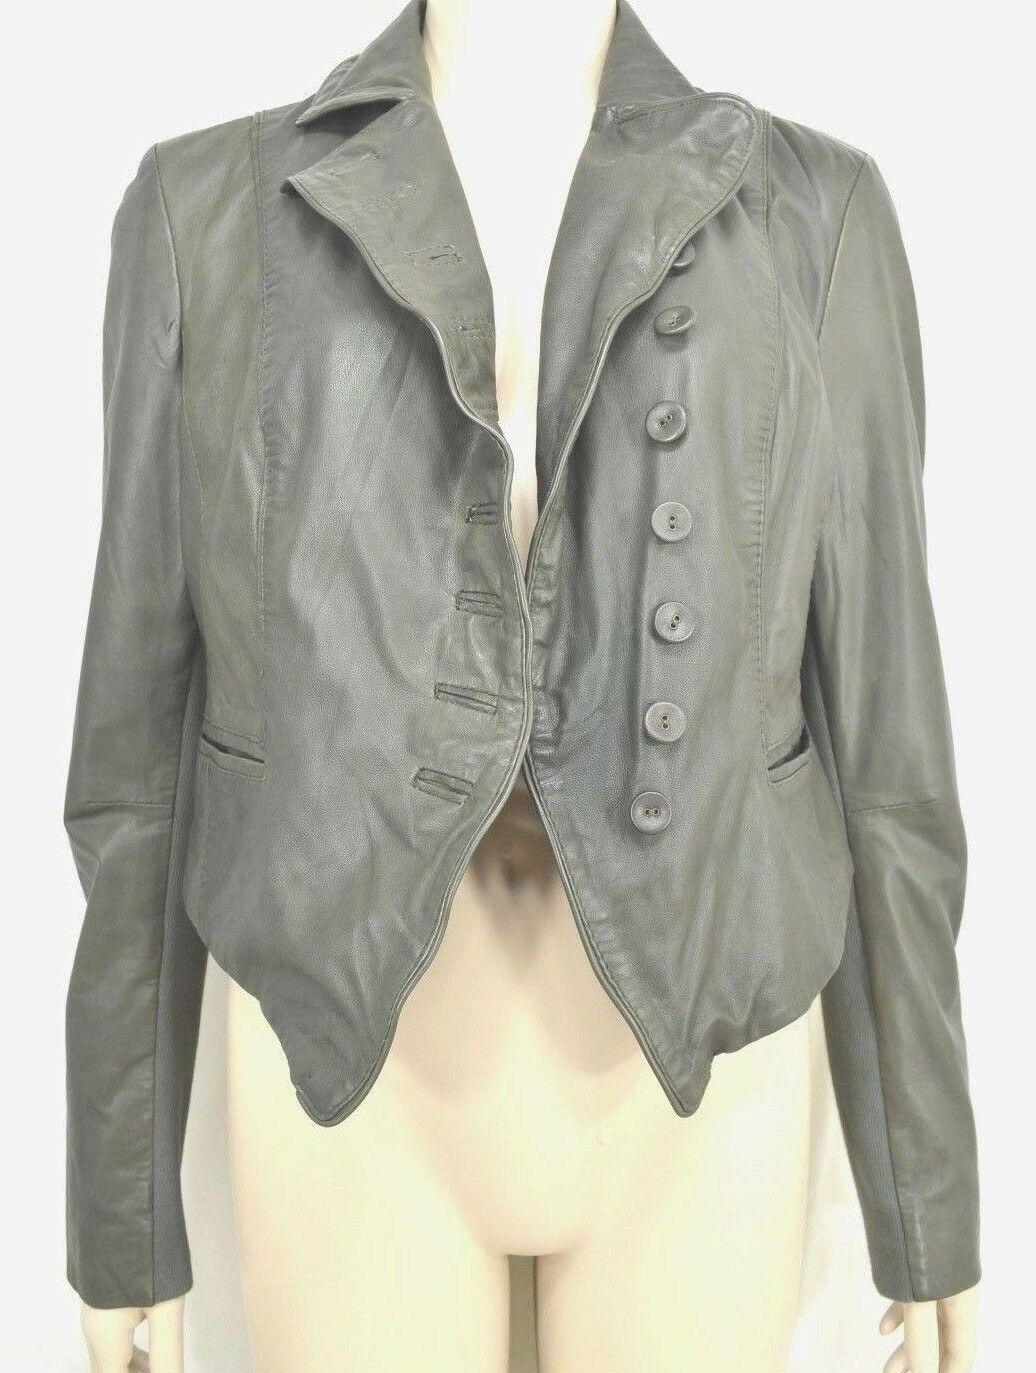 MUUBAA lambskin soft leather jacket SZ 8 Moss Army Gray asymmetric buttoned